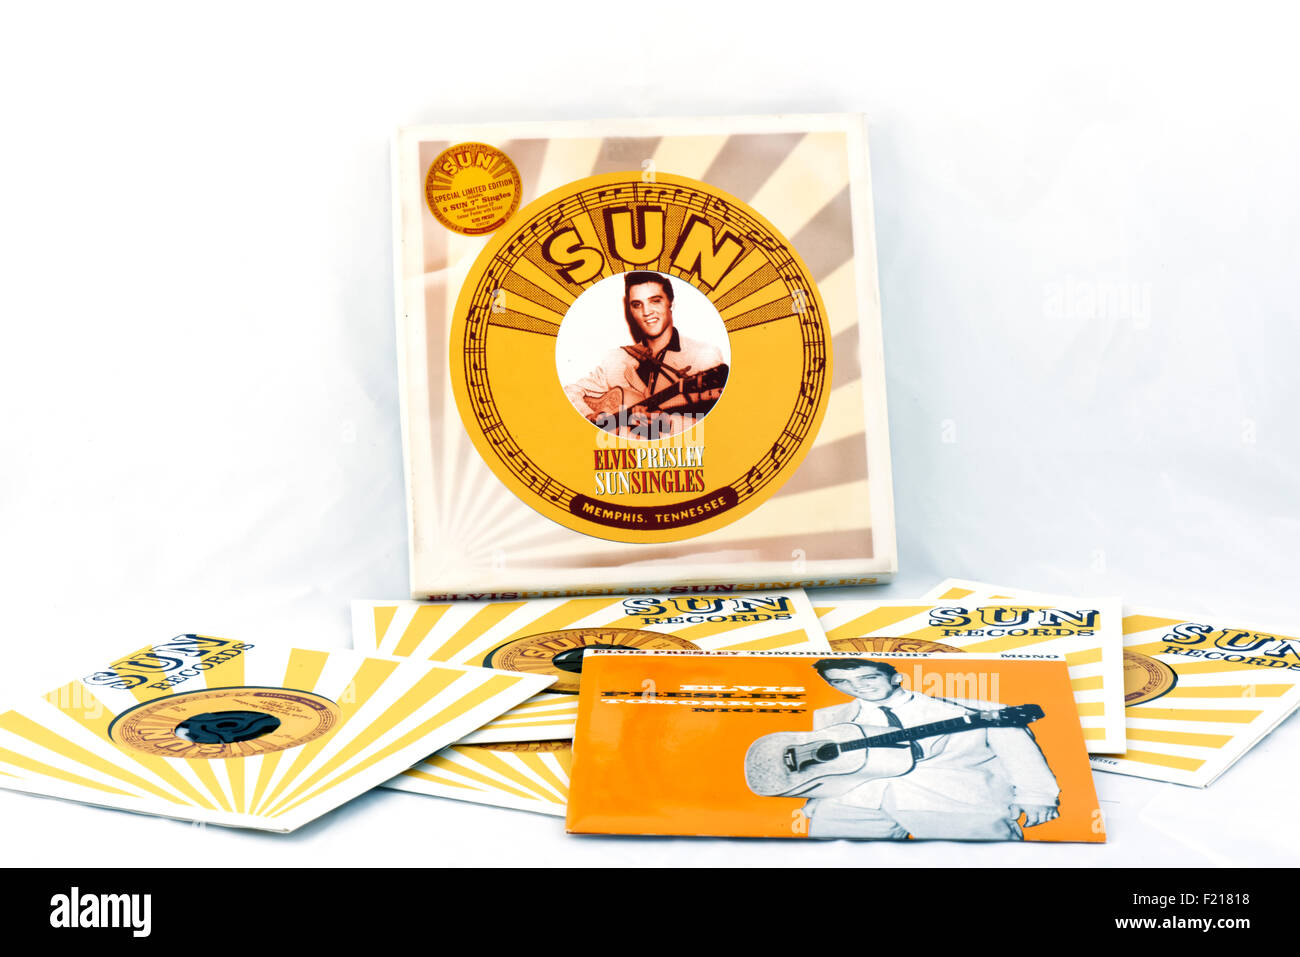 Elvis Presley 7' (seven inch) singles vinyl Sun record reproduction collectors item box set on white background. - Stock Image